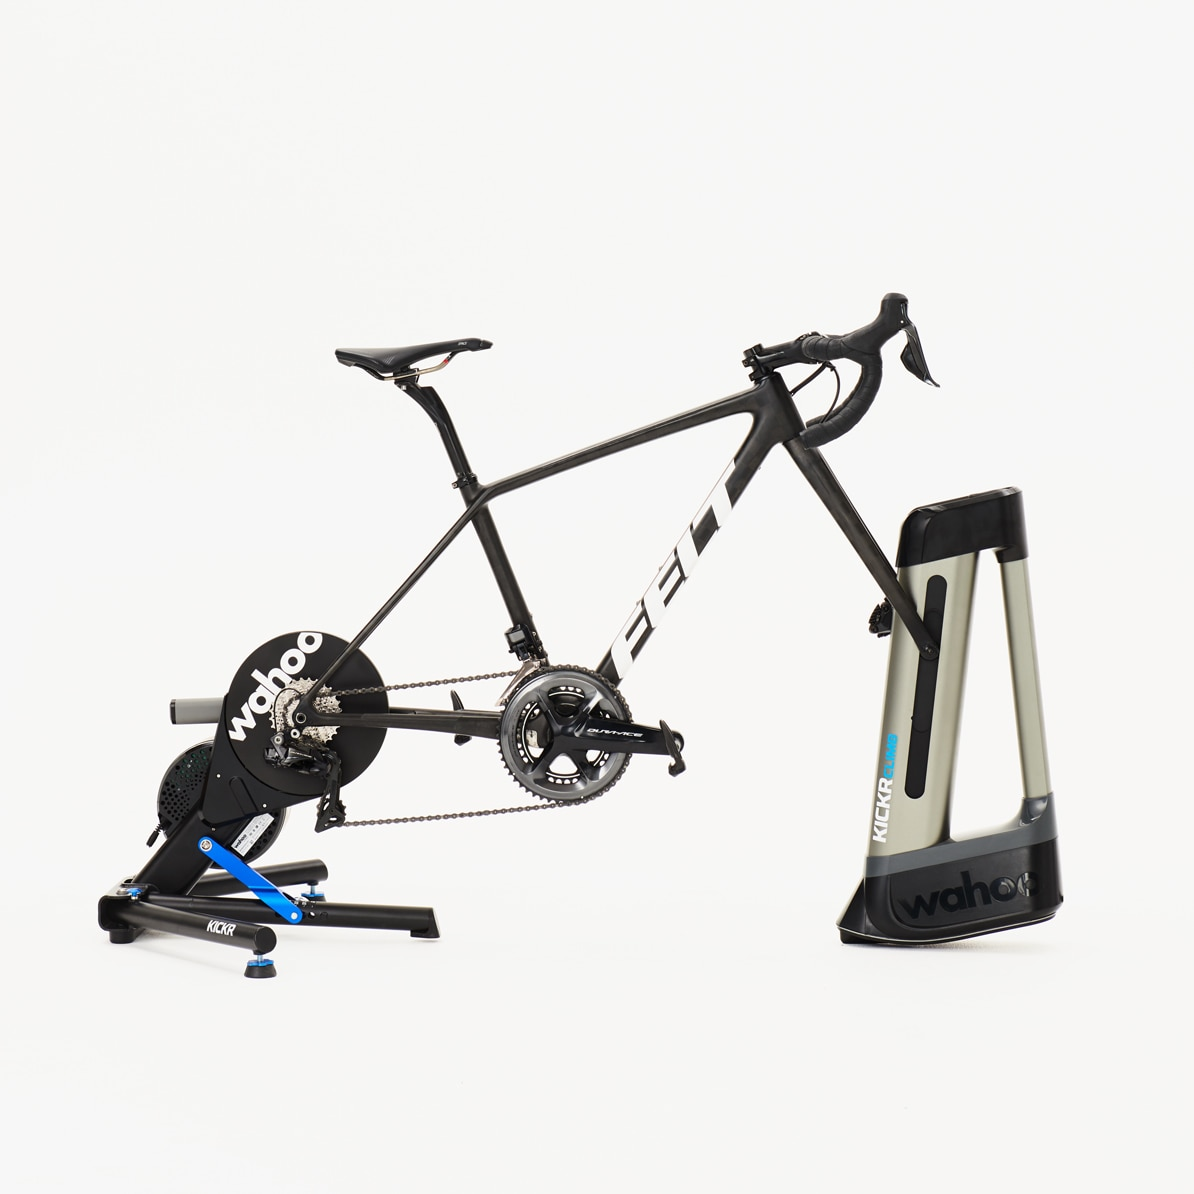 KICKR CLIMB Simulate Climbing in Zwift with Real Grade